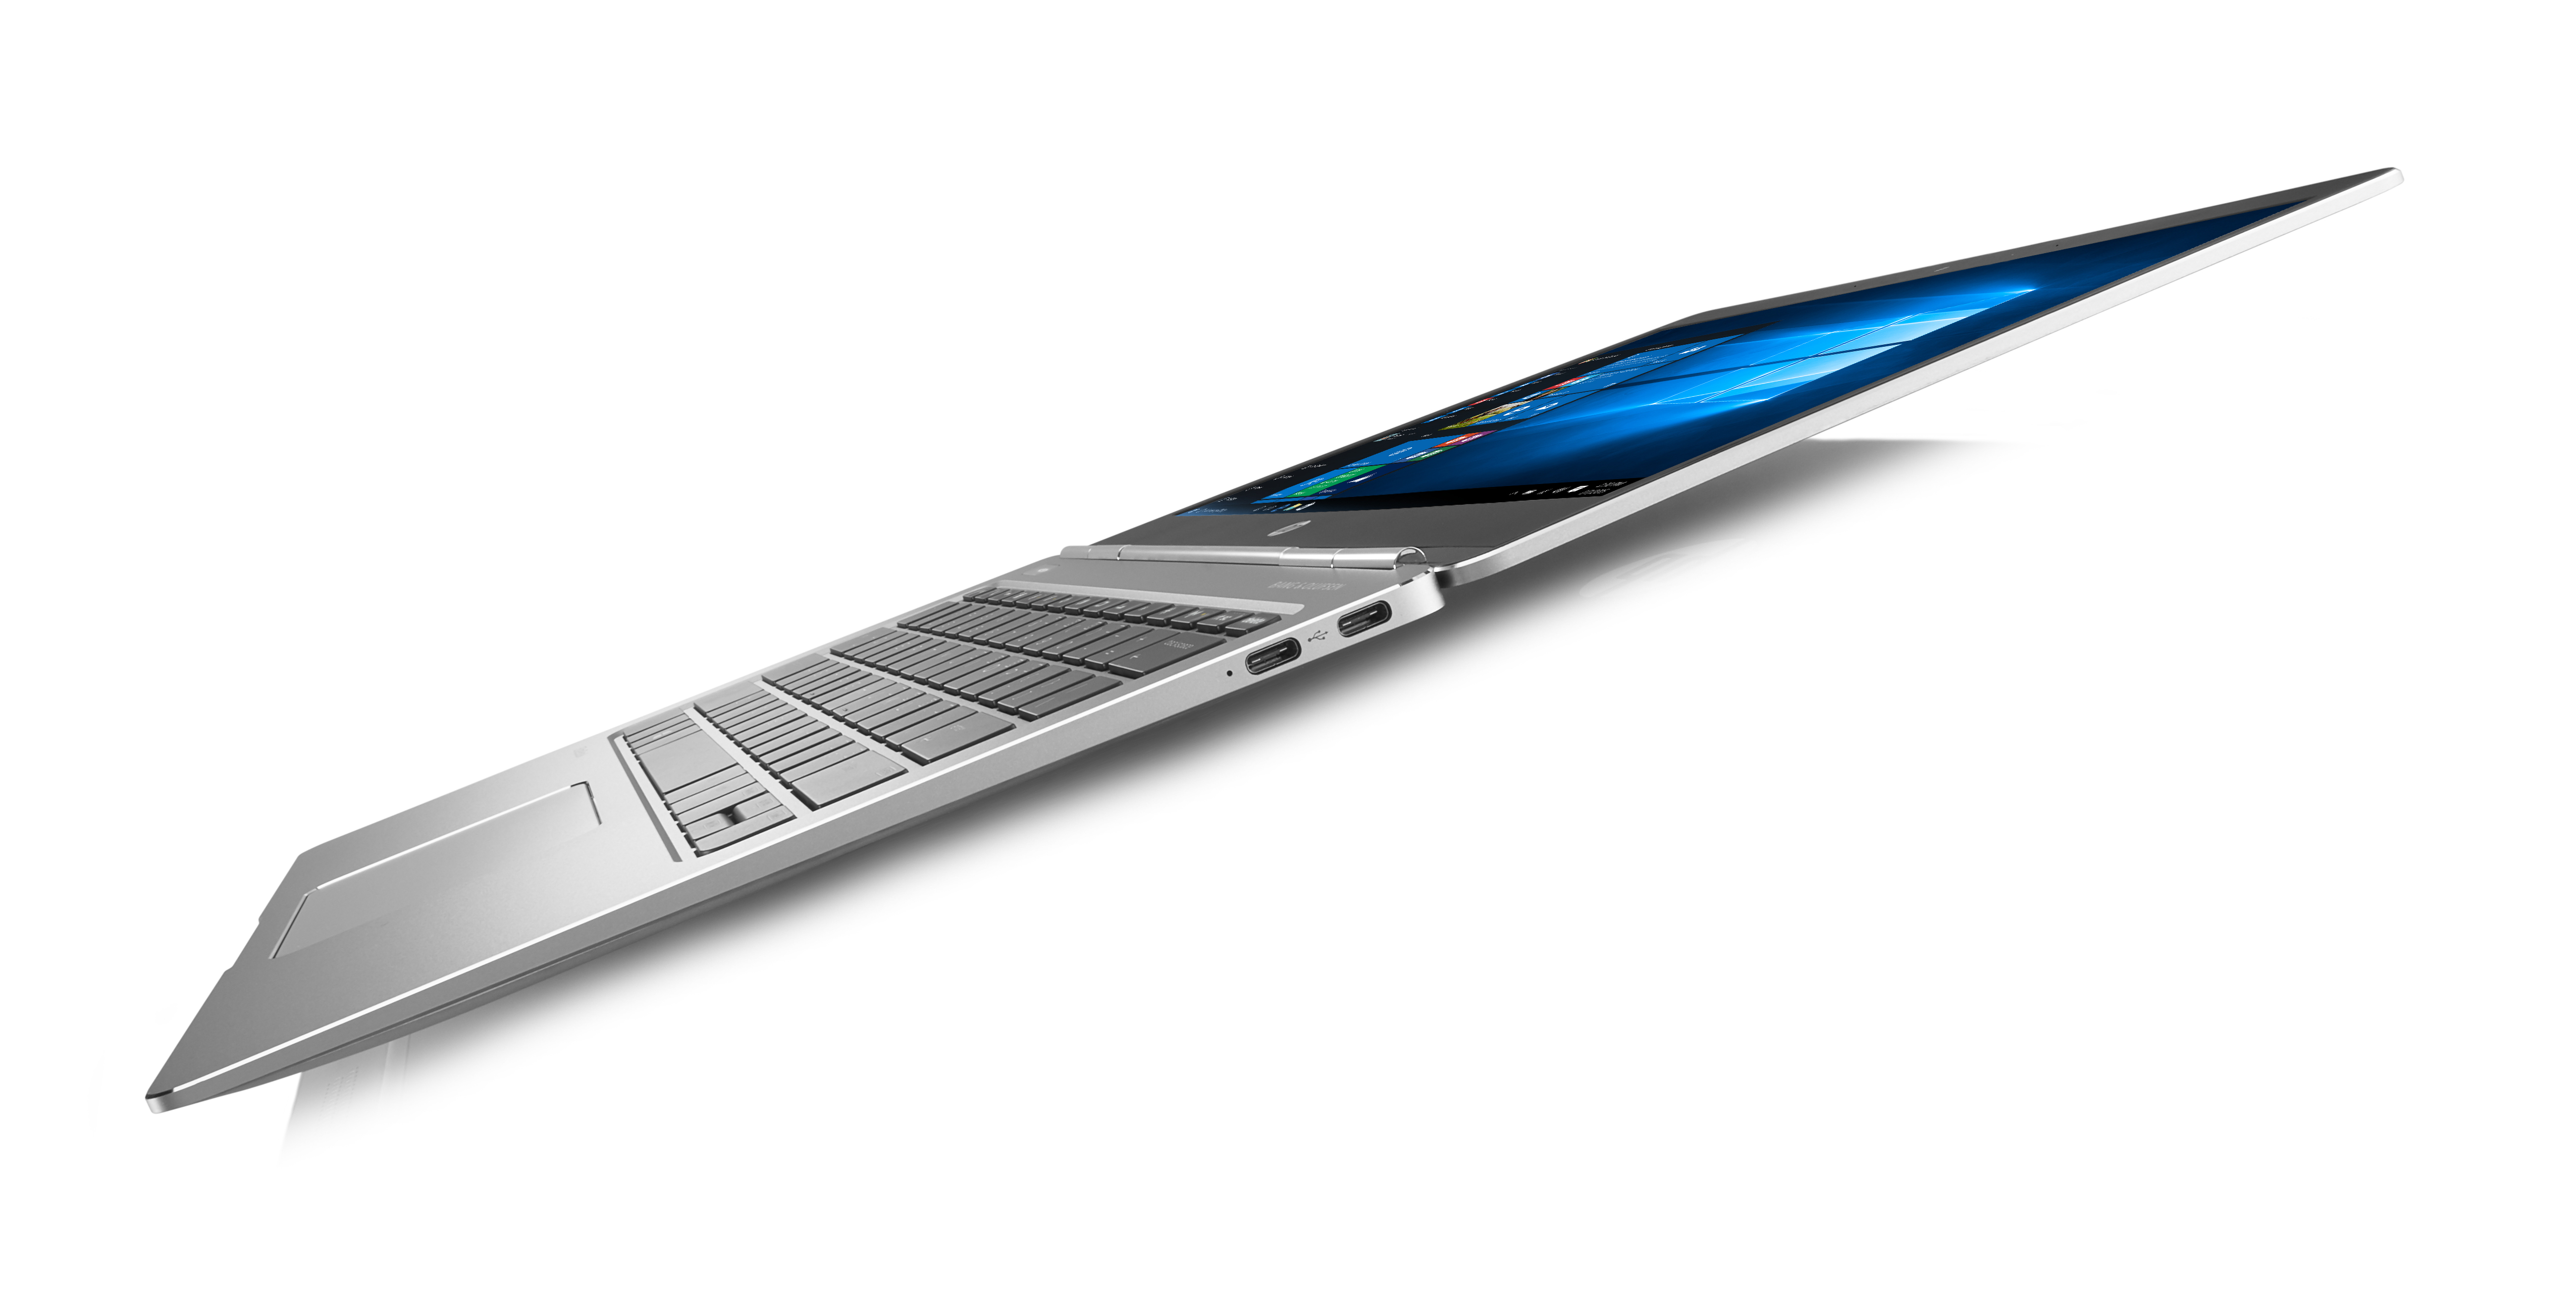 HP's new business laptop is stylish enough even for regular folks